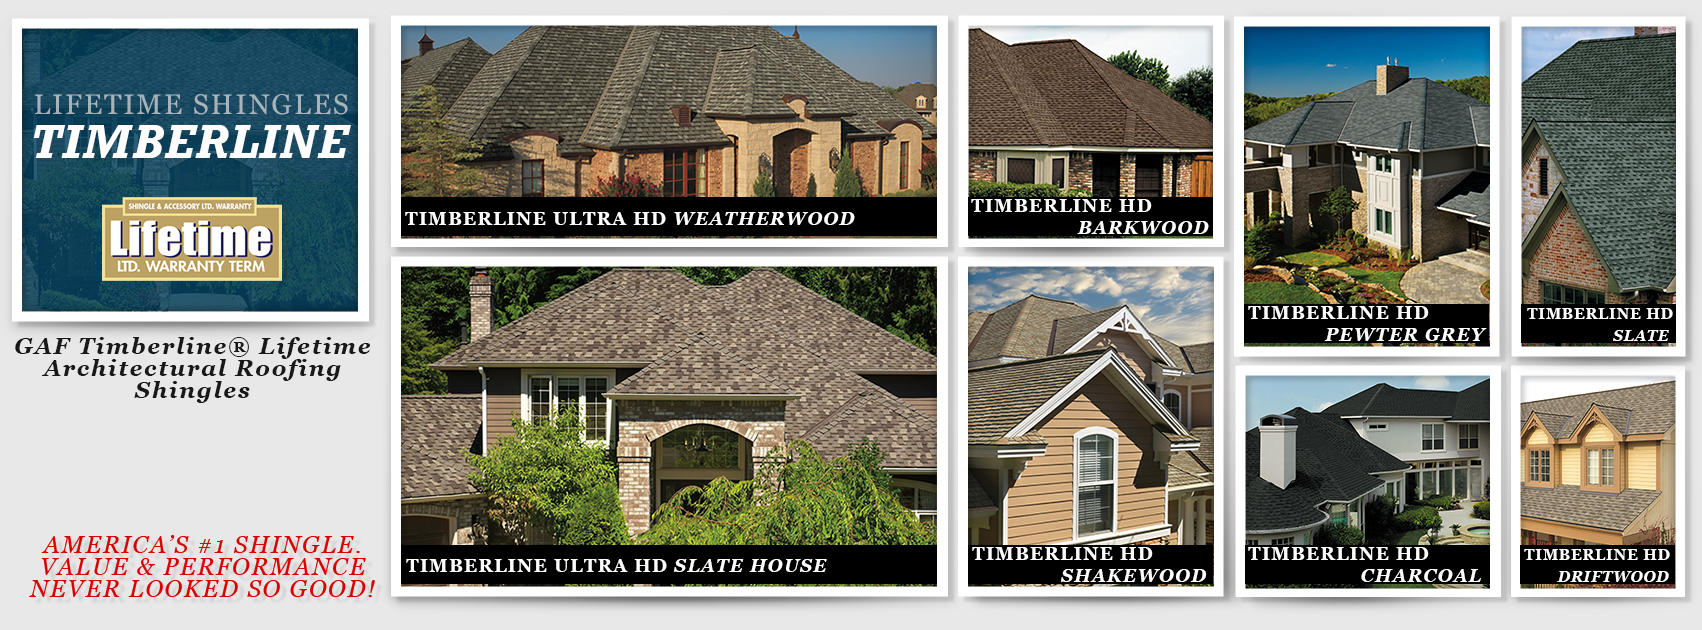 Achten's Quality Roofing of Lakewood image 17